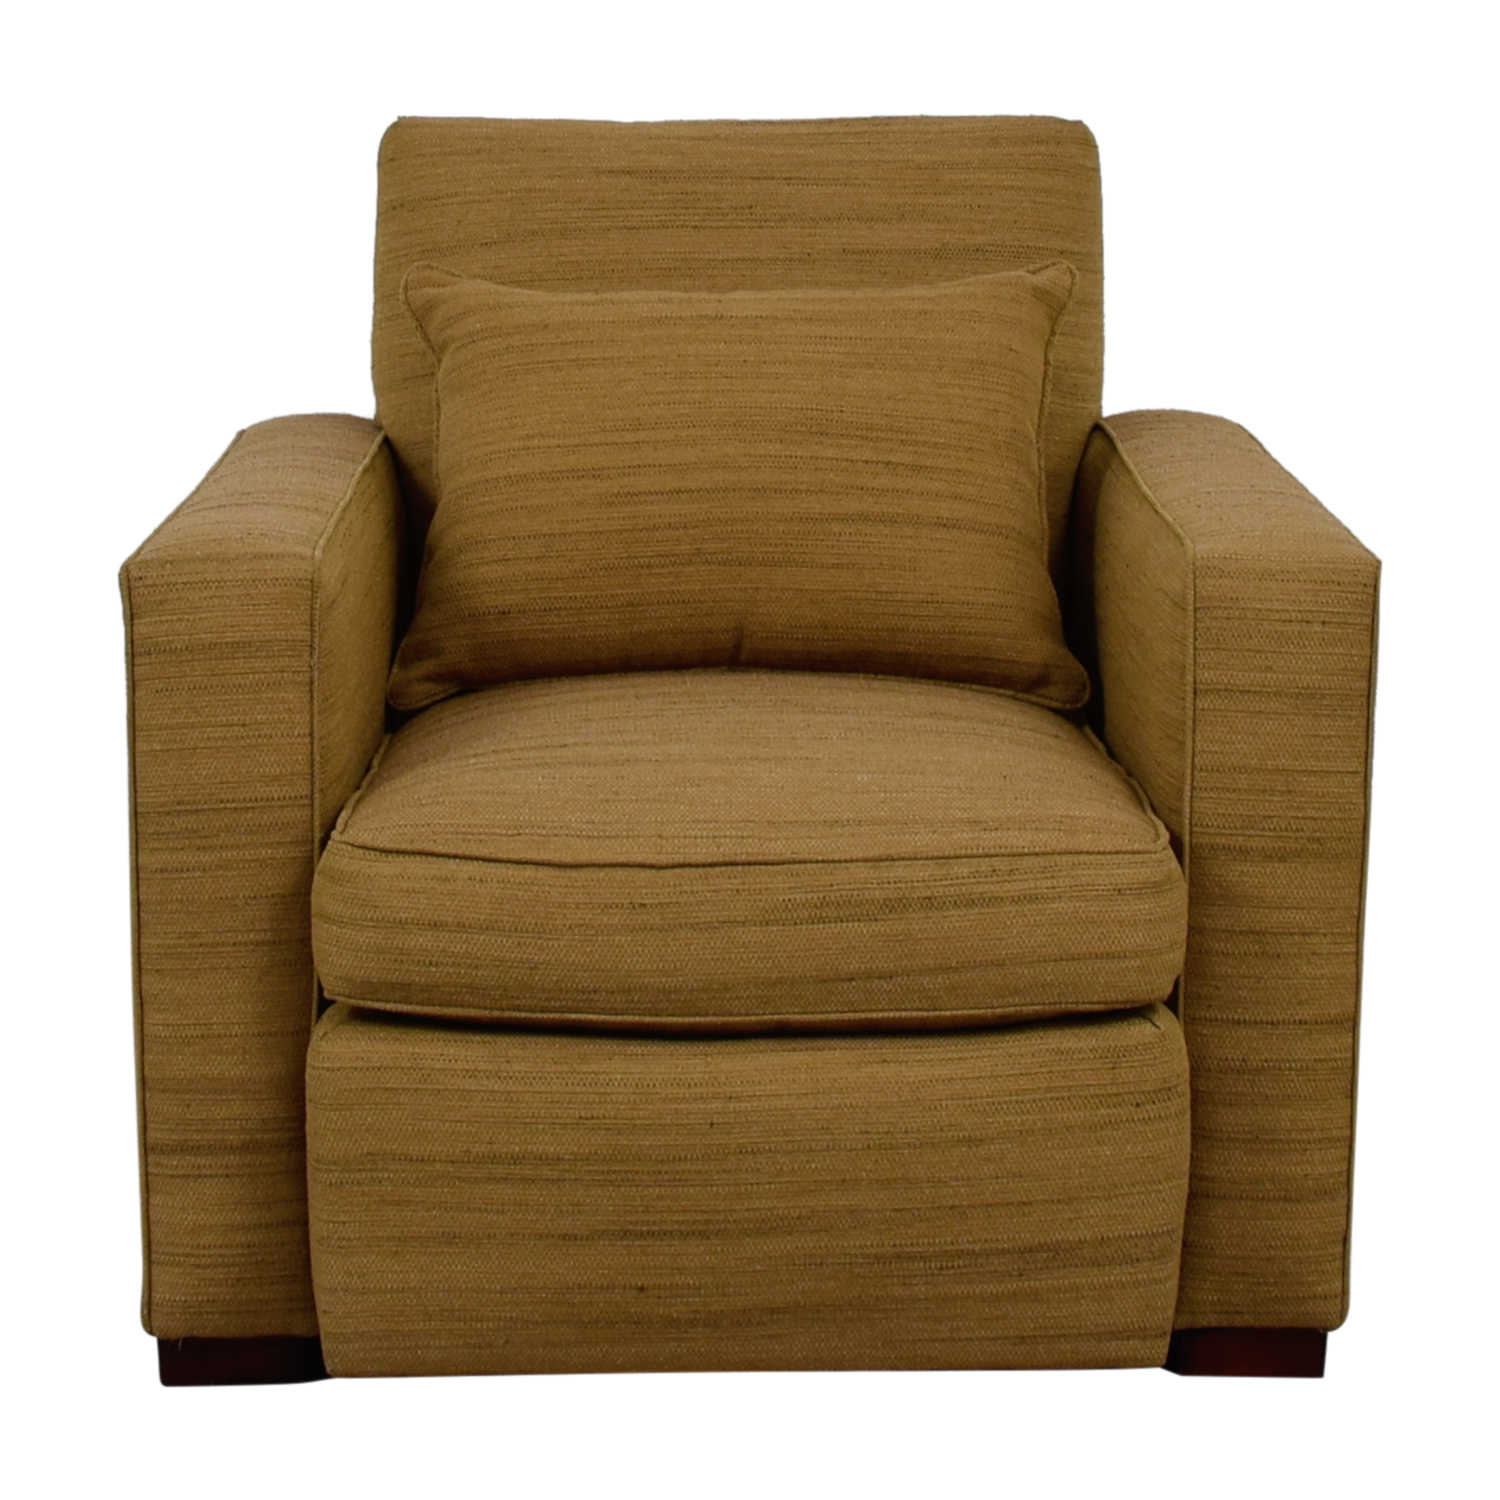 5% OFF - Hickory Chair Hickory Chair Classic Modern Club Chair / Chairs